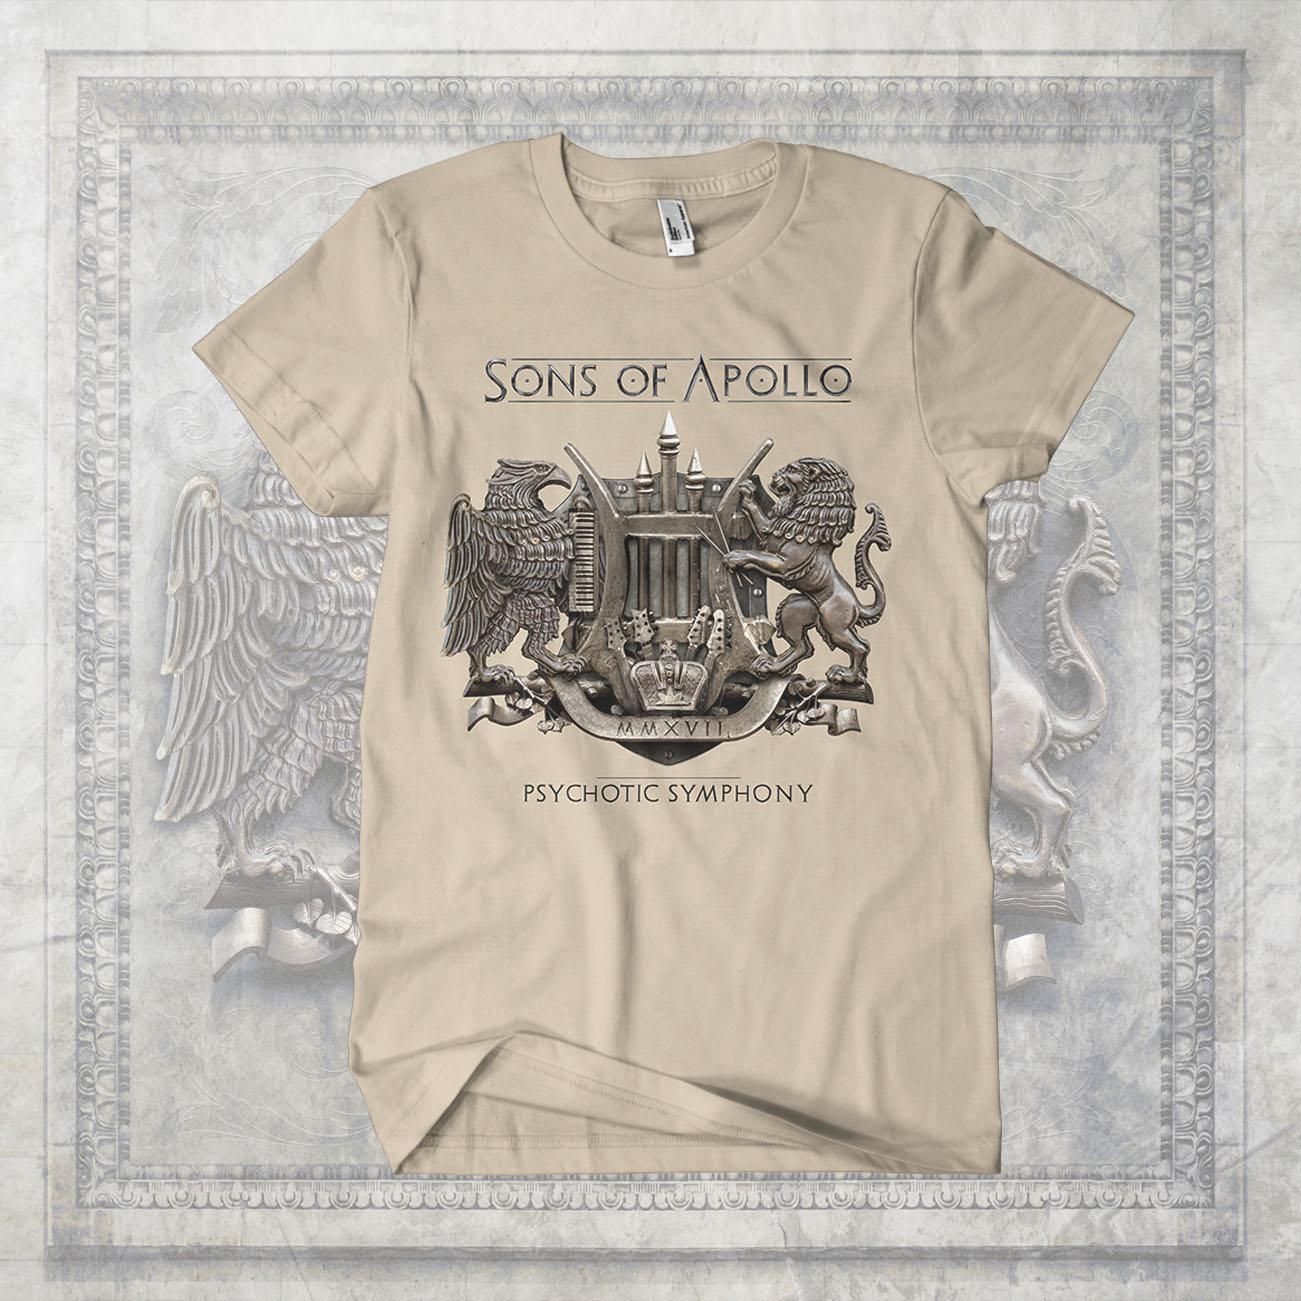 Sons of Apollo - 'Symphony' T-Shirt - Sons of Apollo